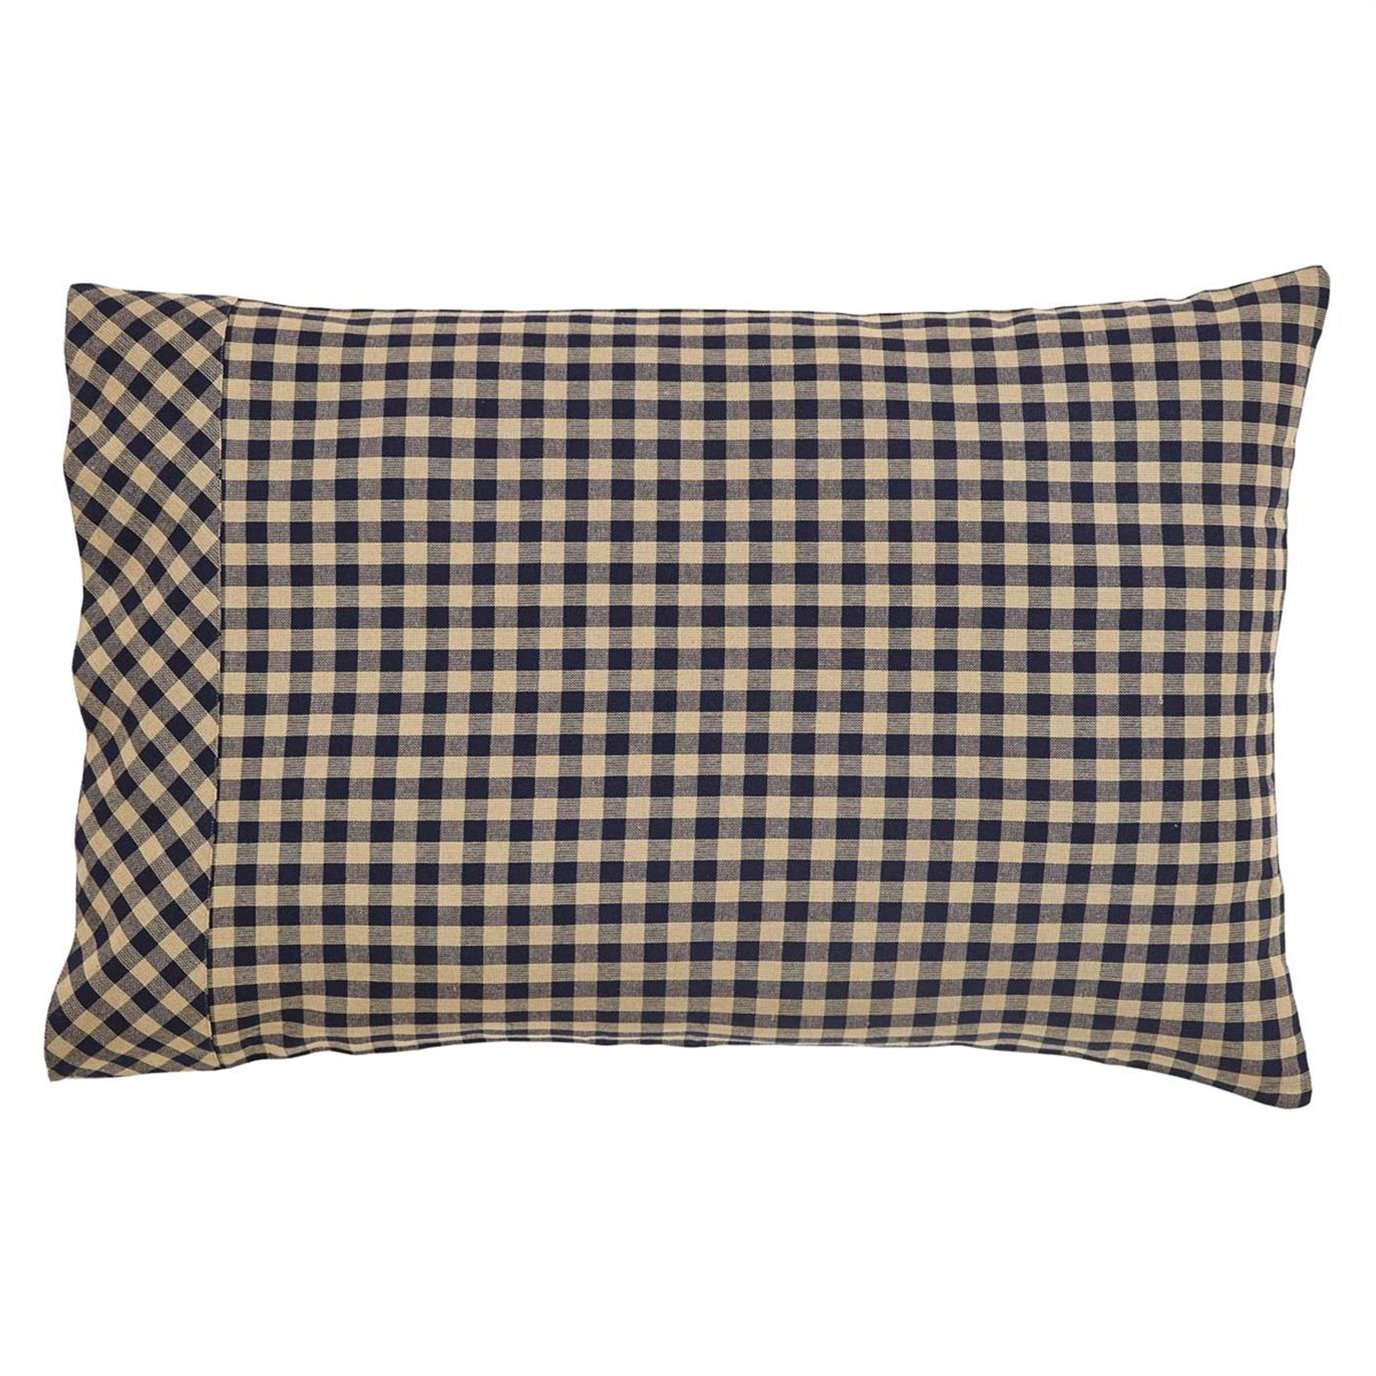 Navy Check Pillow Case Set of 2